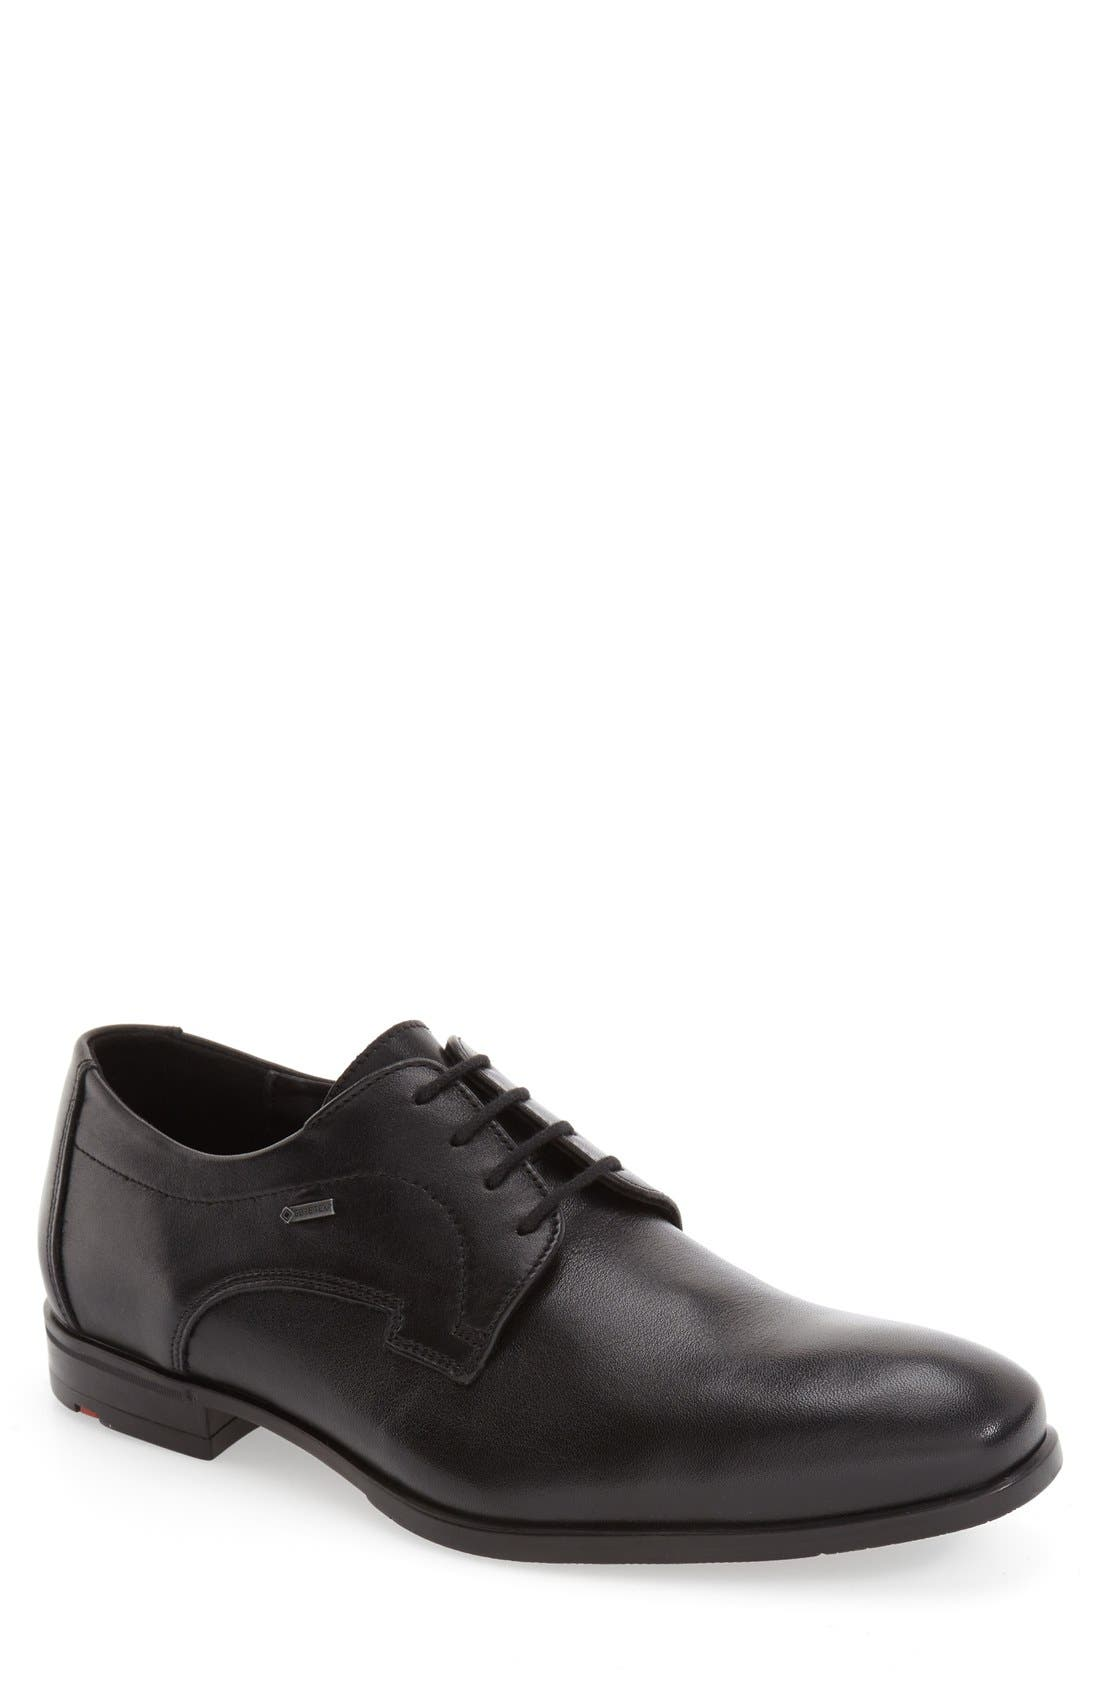 Alternate Image 1 Selected - Lloyd 'Valencia' Plain Toe Derby (Men)